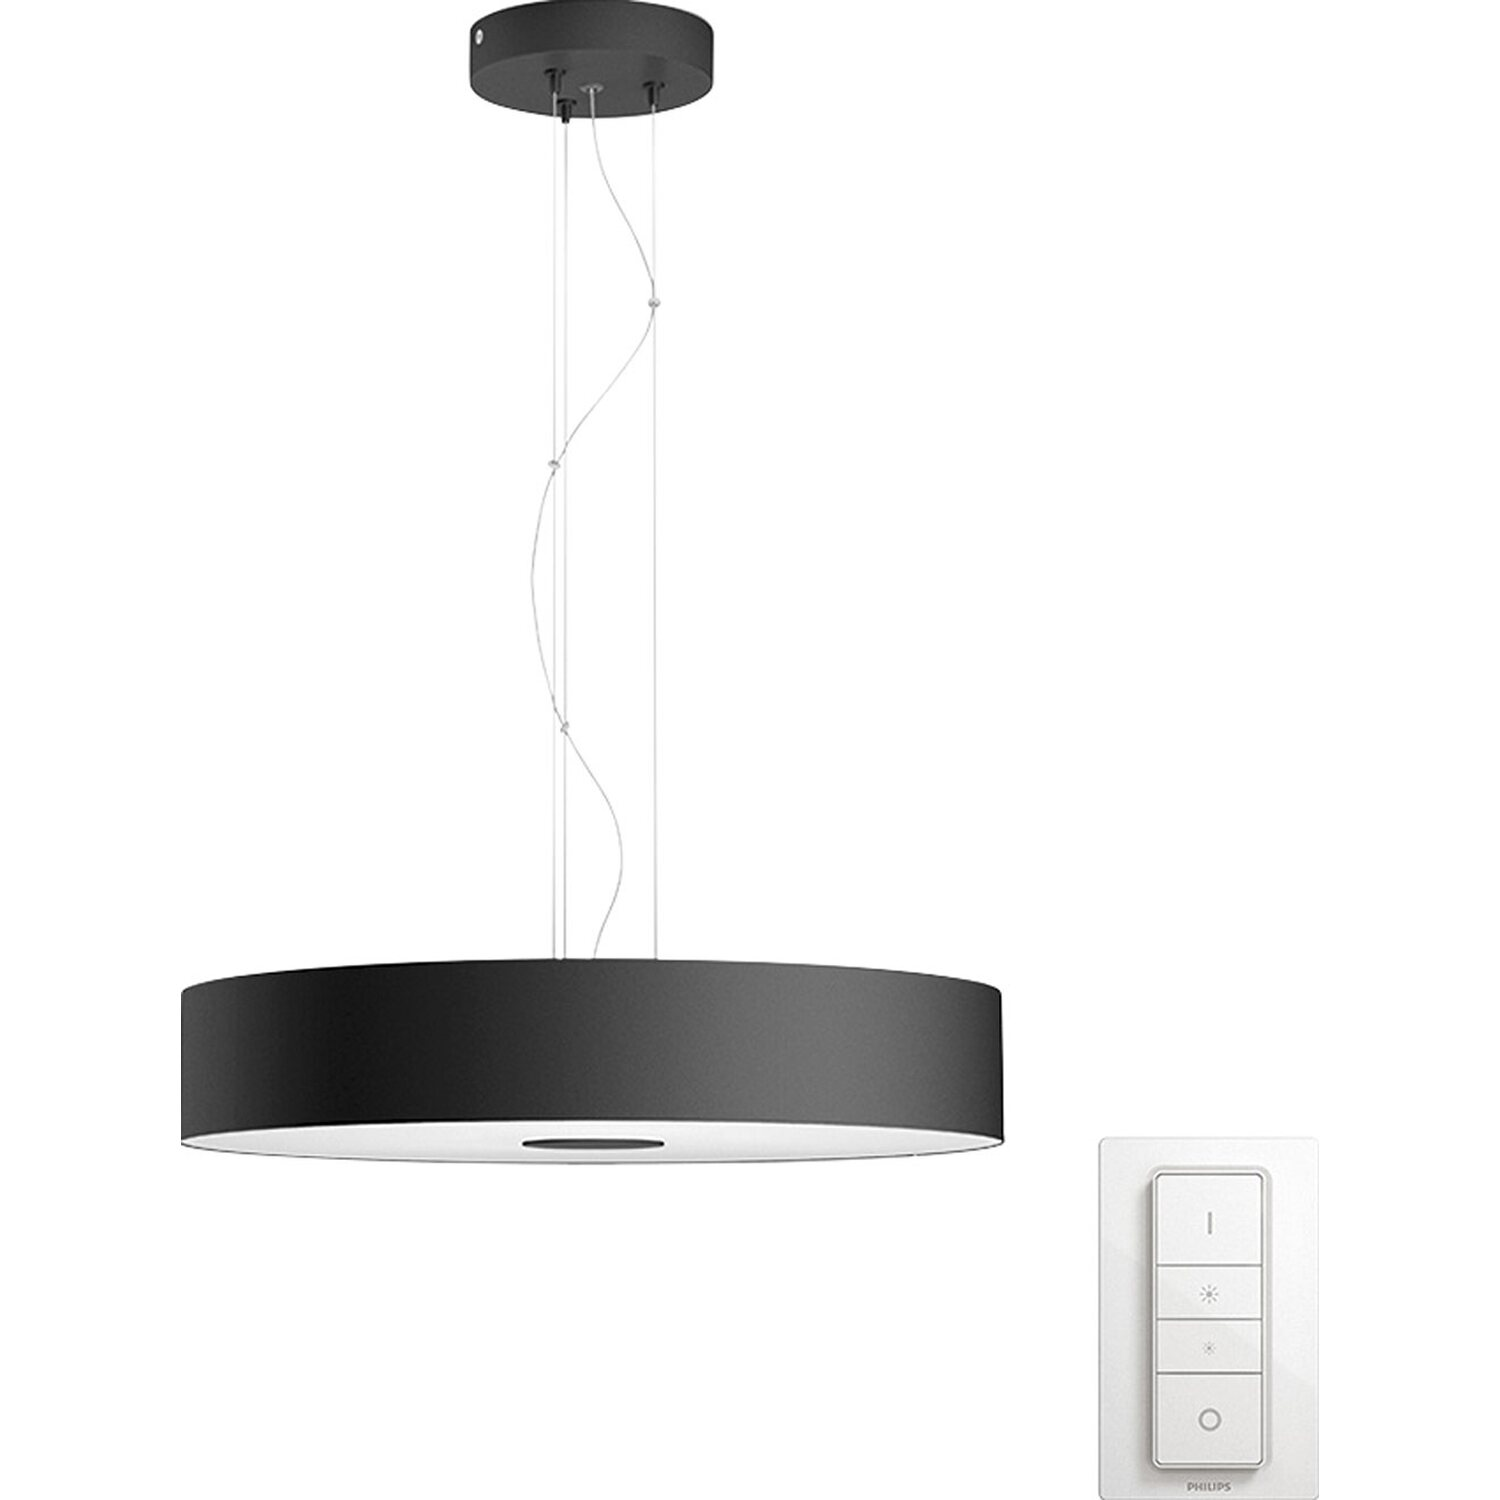 philips hue led pendelleuchte fair eek a kaufen bei obi. Black Bedroom Furniture Sets. Home Design Ideas